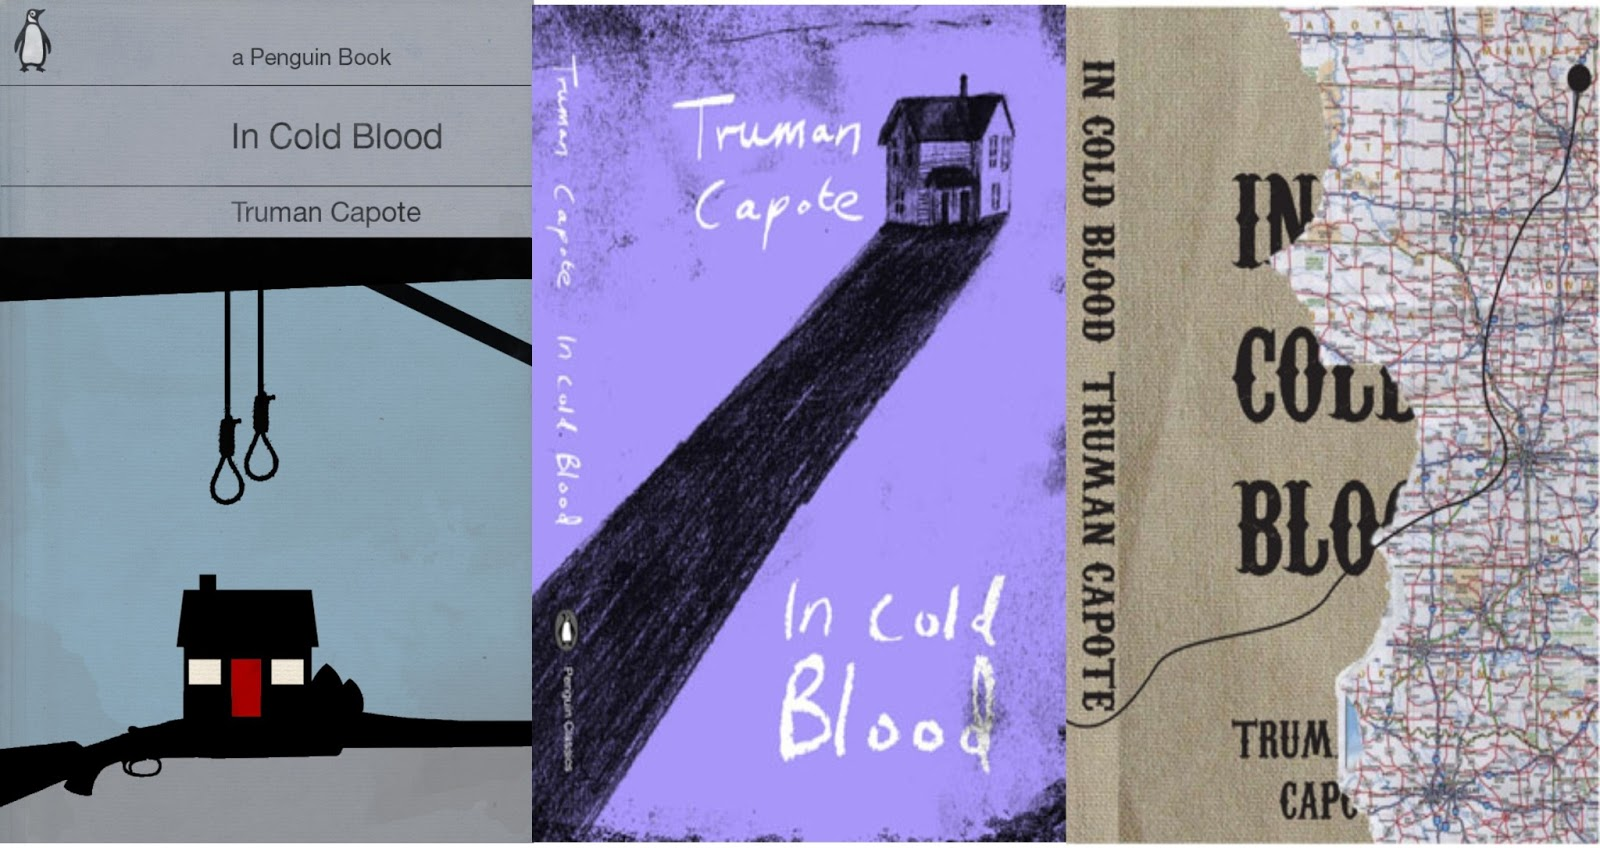 a book analysis of in cold blood by truman capote In cold blood is not a happy conclusion to that search, if it is a conclusion the role in which it puts capote is less than one could have hoped for the role in which it puts capote is less than one could have hoped for.